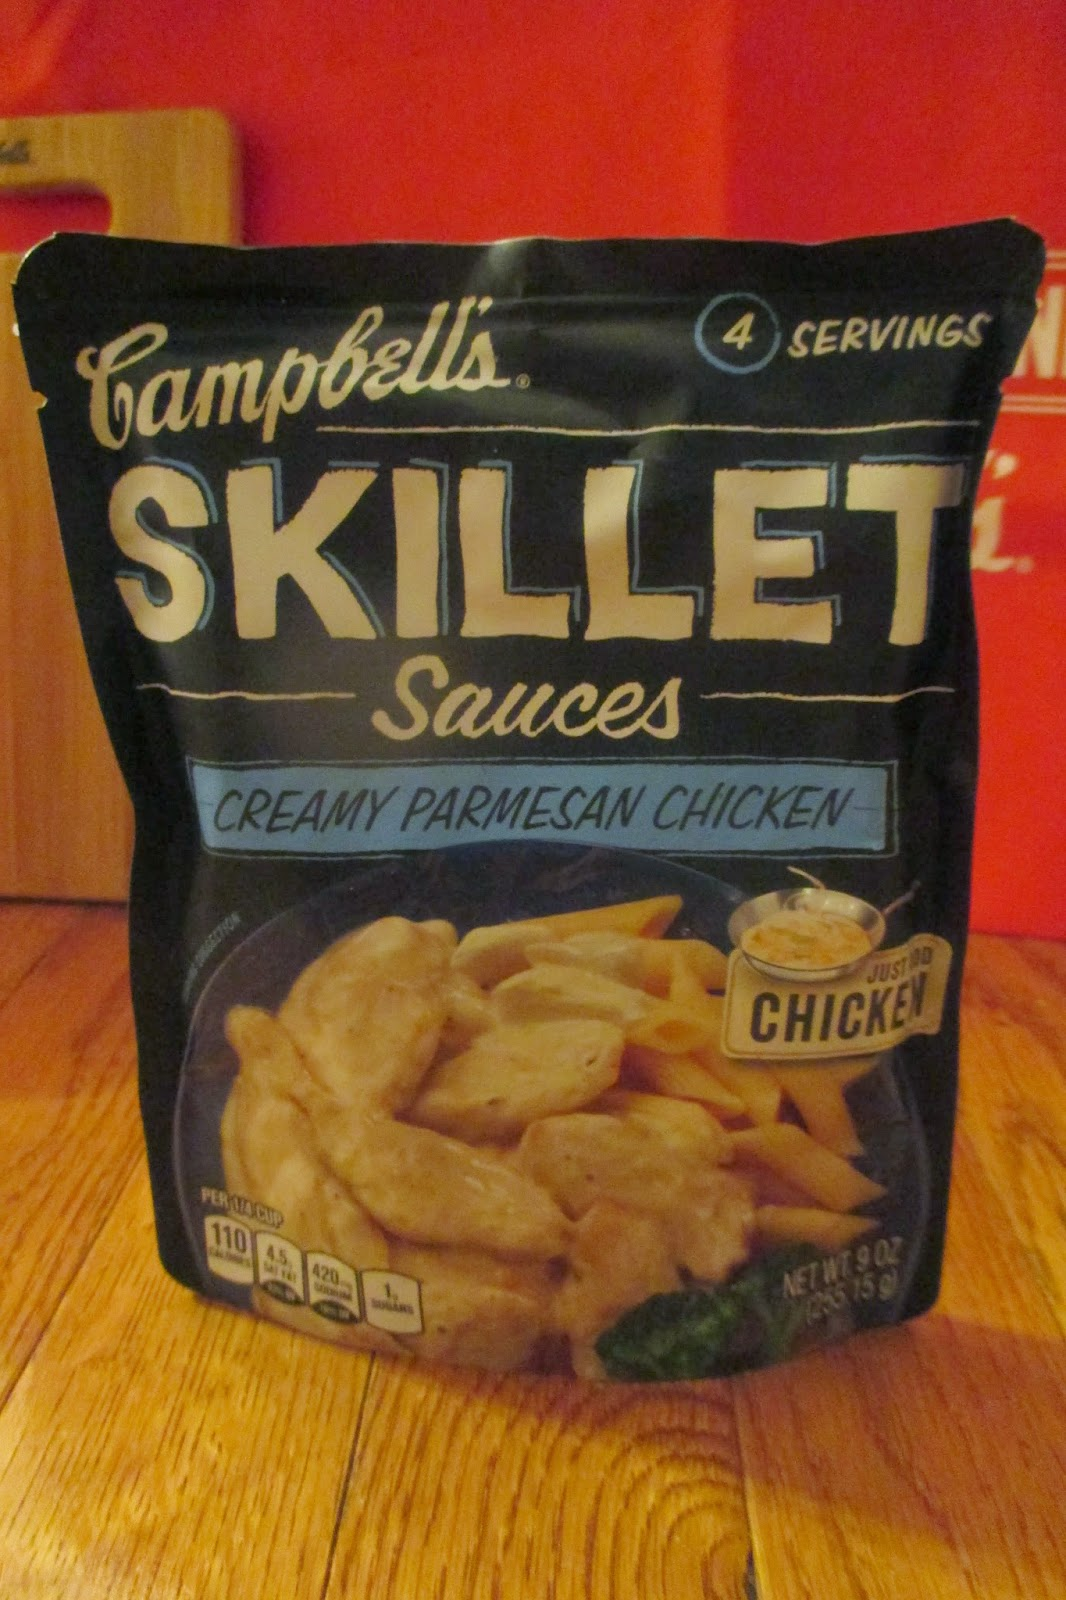 Campbell's Creamy Parmesan Chicken Campbell's Skillet Sauce